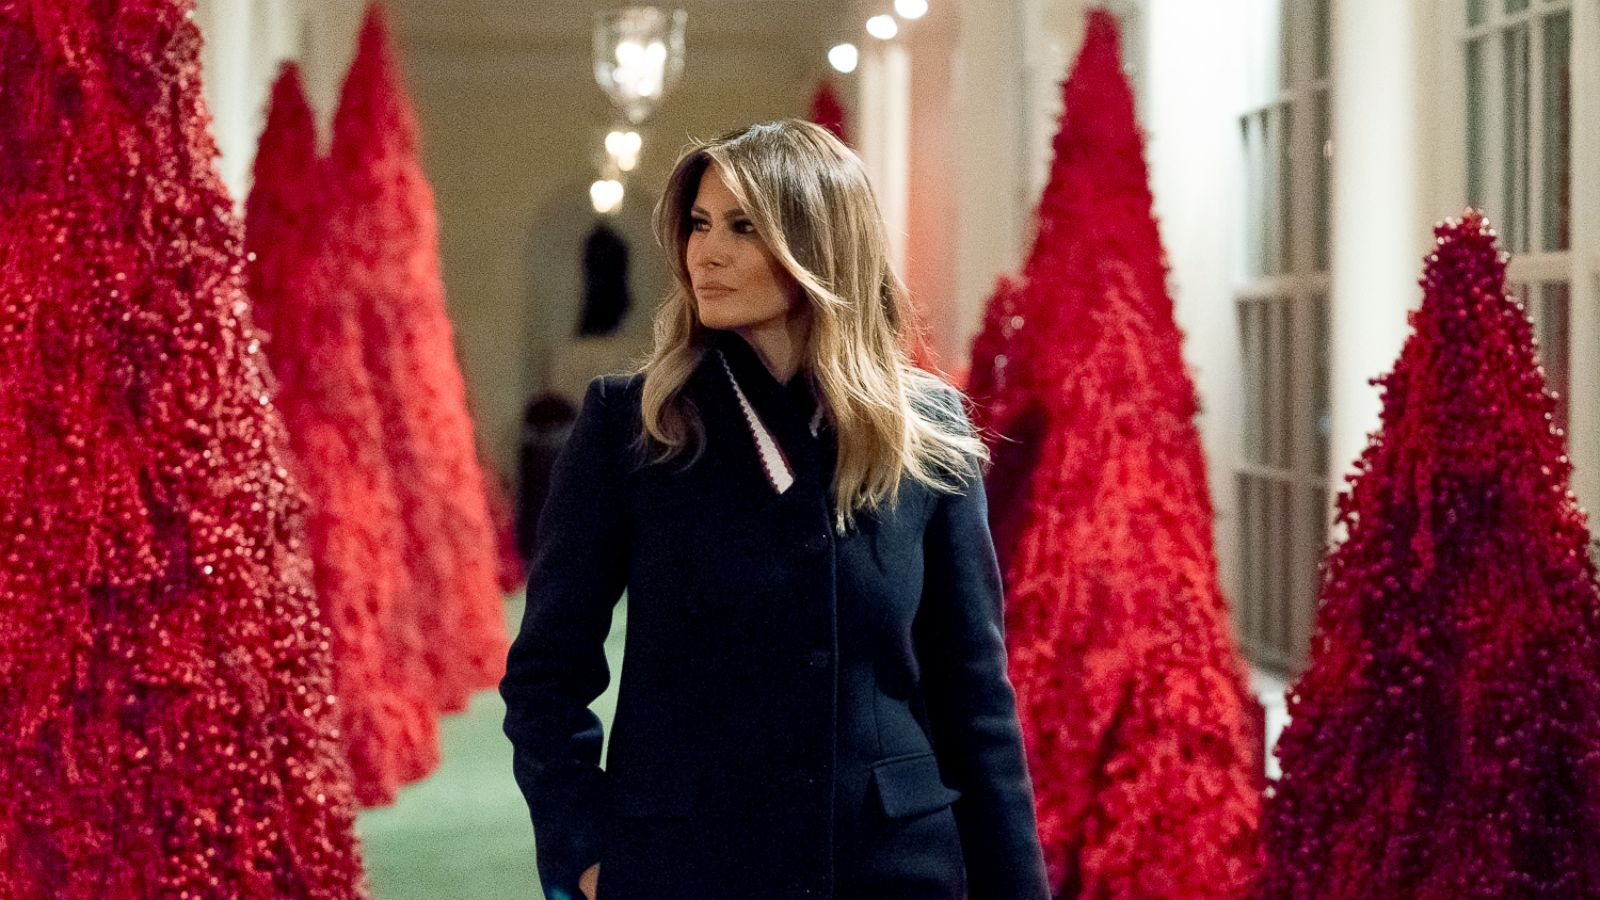 White House Christmas 2020 Handmaids After 'The Handmaid's Tale' references, Melania Trump defends her